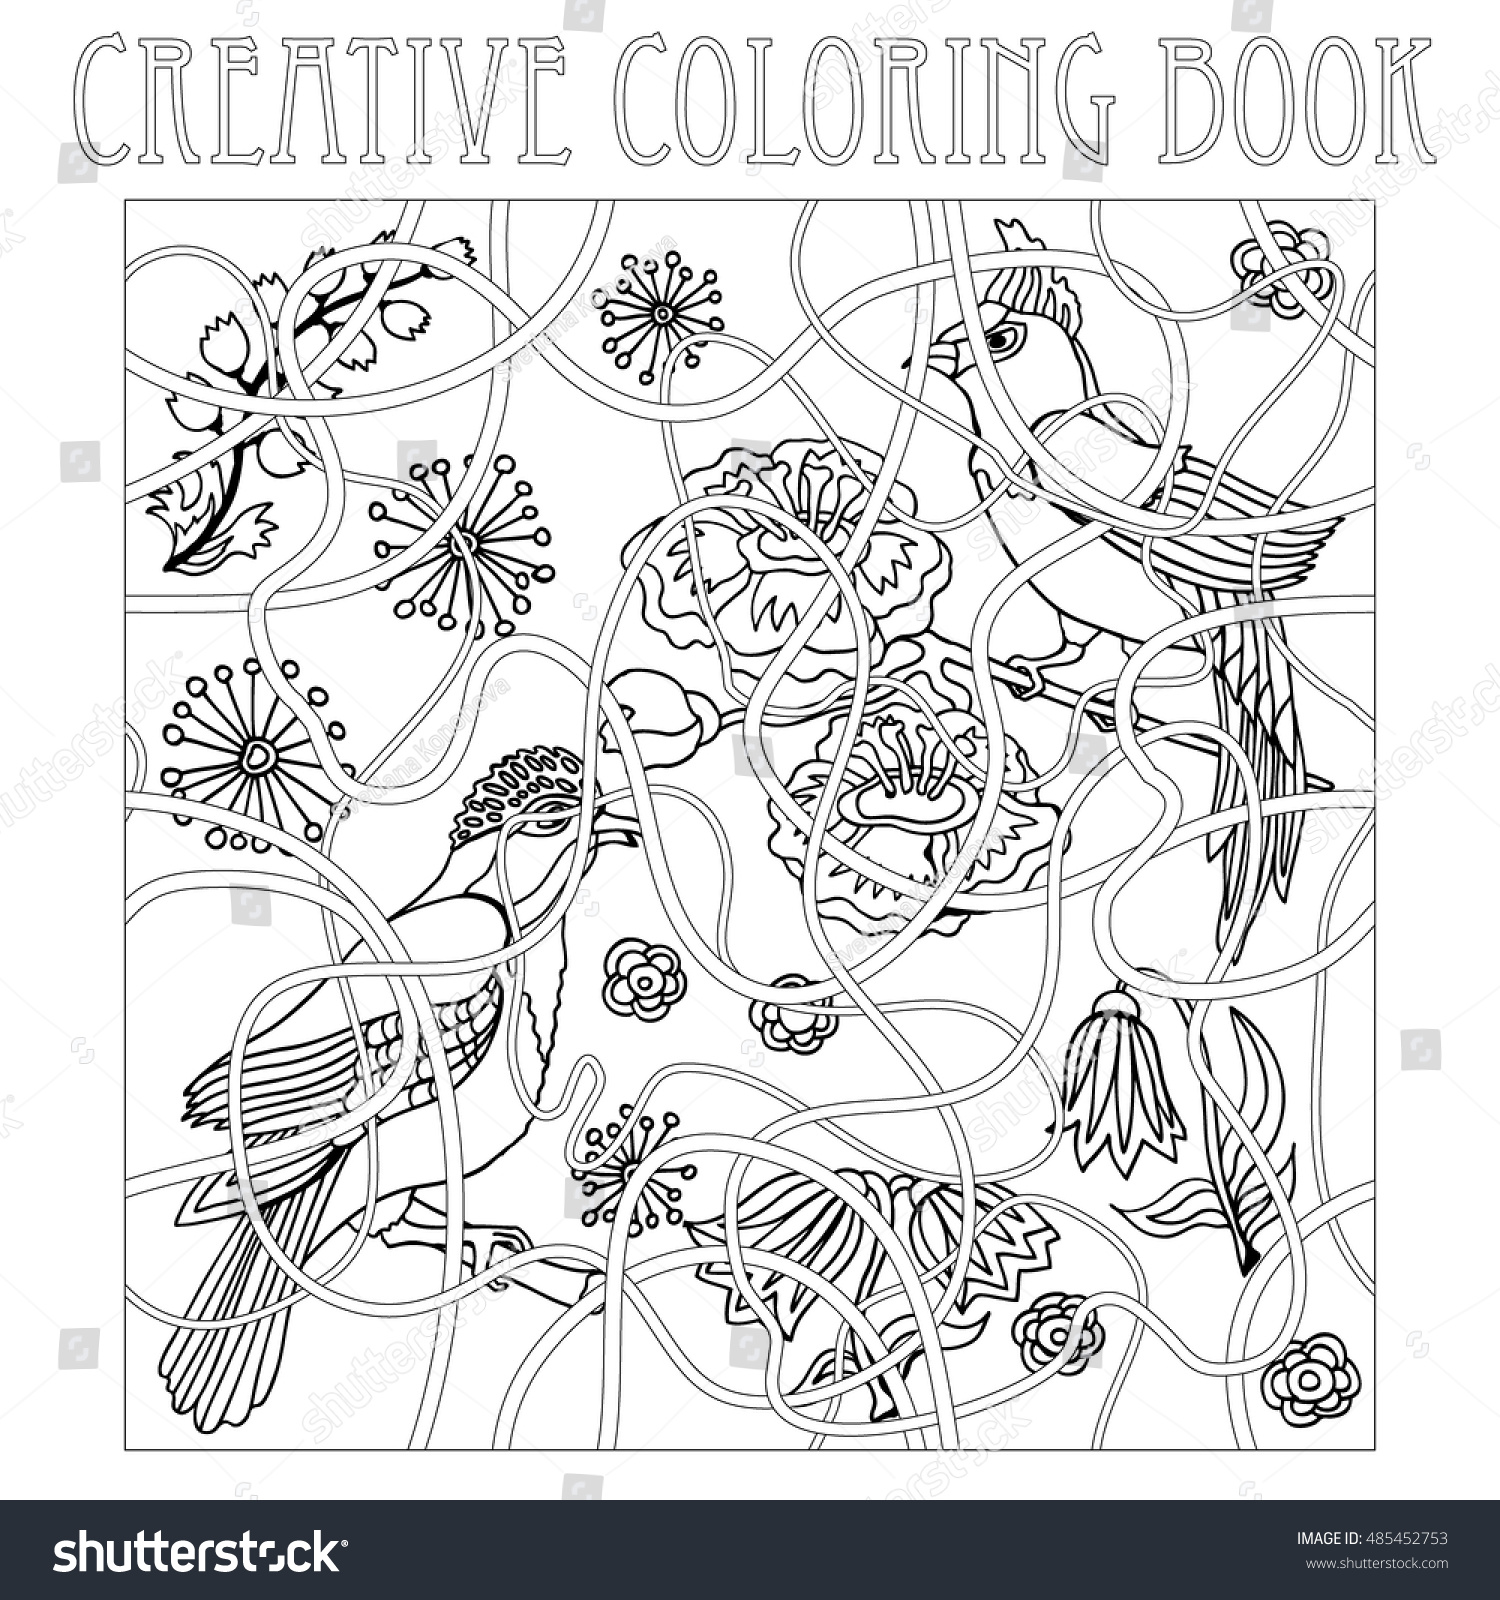 Paradise Birds In Japanese Garden Creative Coloring Book Inspired By Zentangle Art Page With